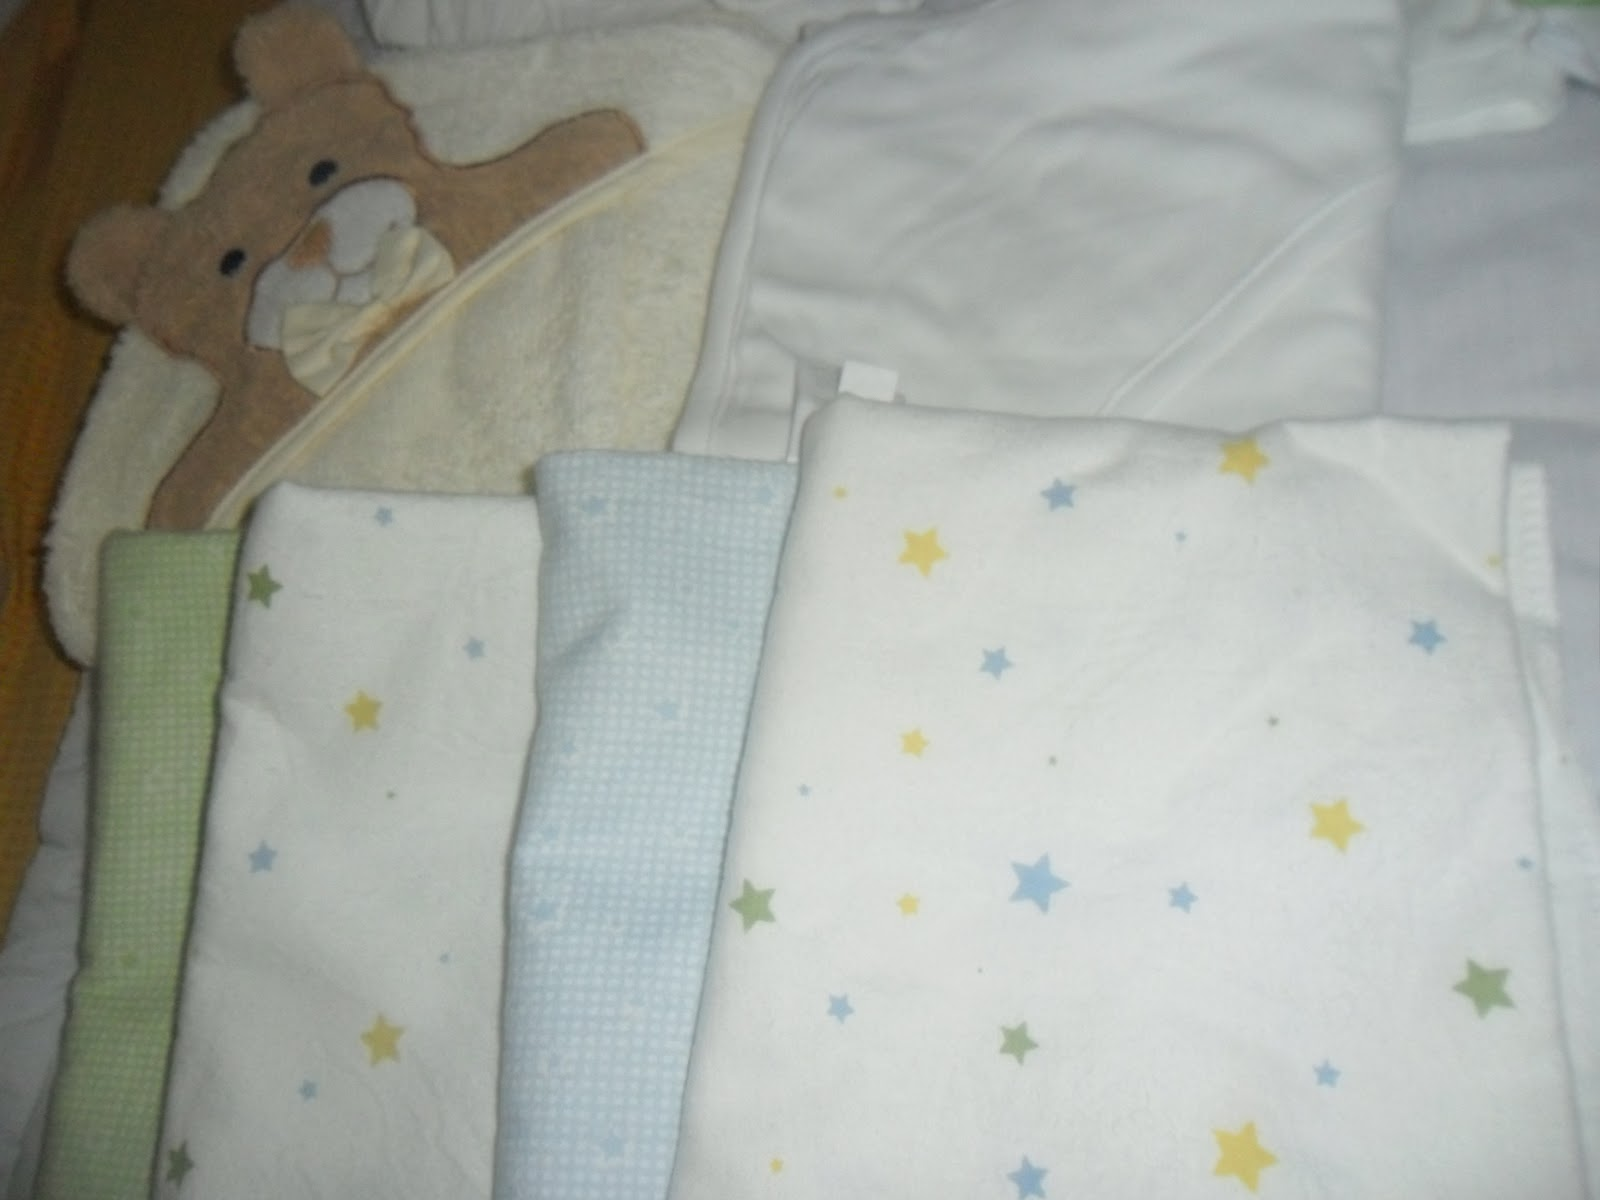 Crib for sale in olongapo - 4 Pc Carter S Receiving Blankets With Star Design